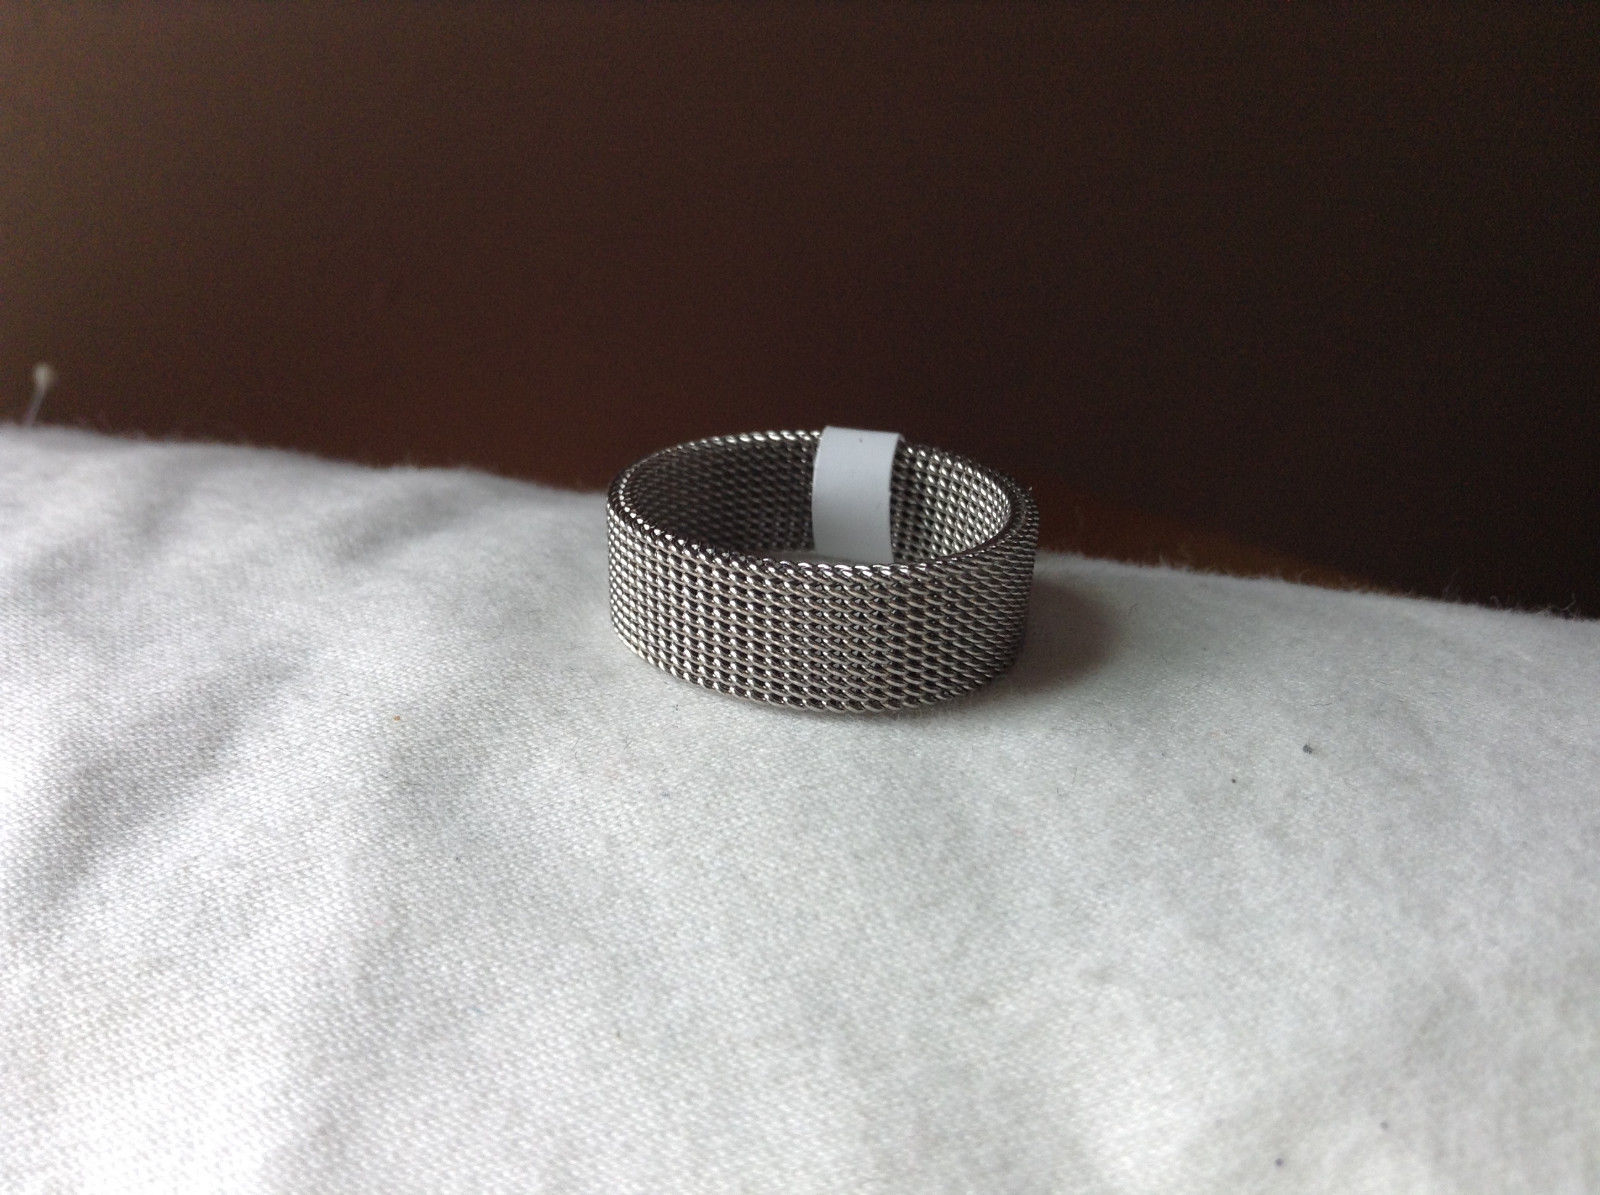 Woven Wide Band Stainless Steel Ring Size 6.25, 7.5, 9, 10, 11.5 Sold Separately